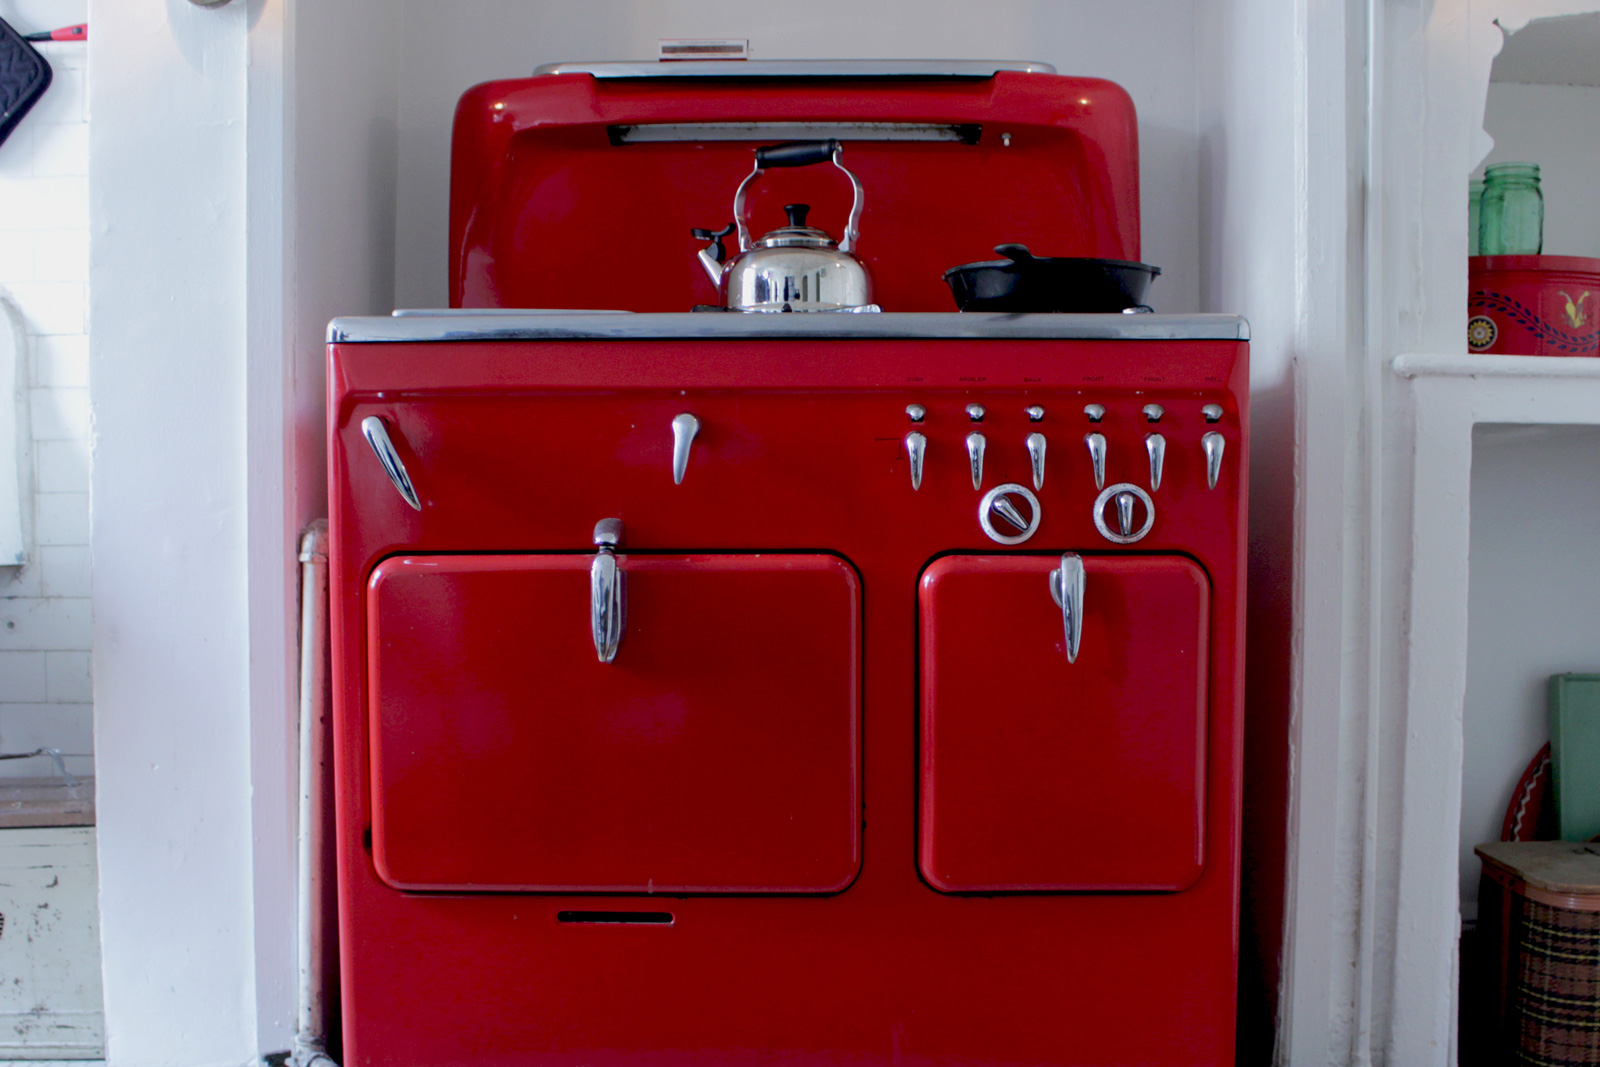 smart options kitchen flooring cheap kitchen flooring Red vintage stove in a home kitchen